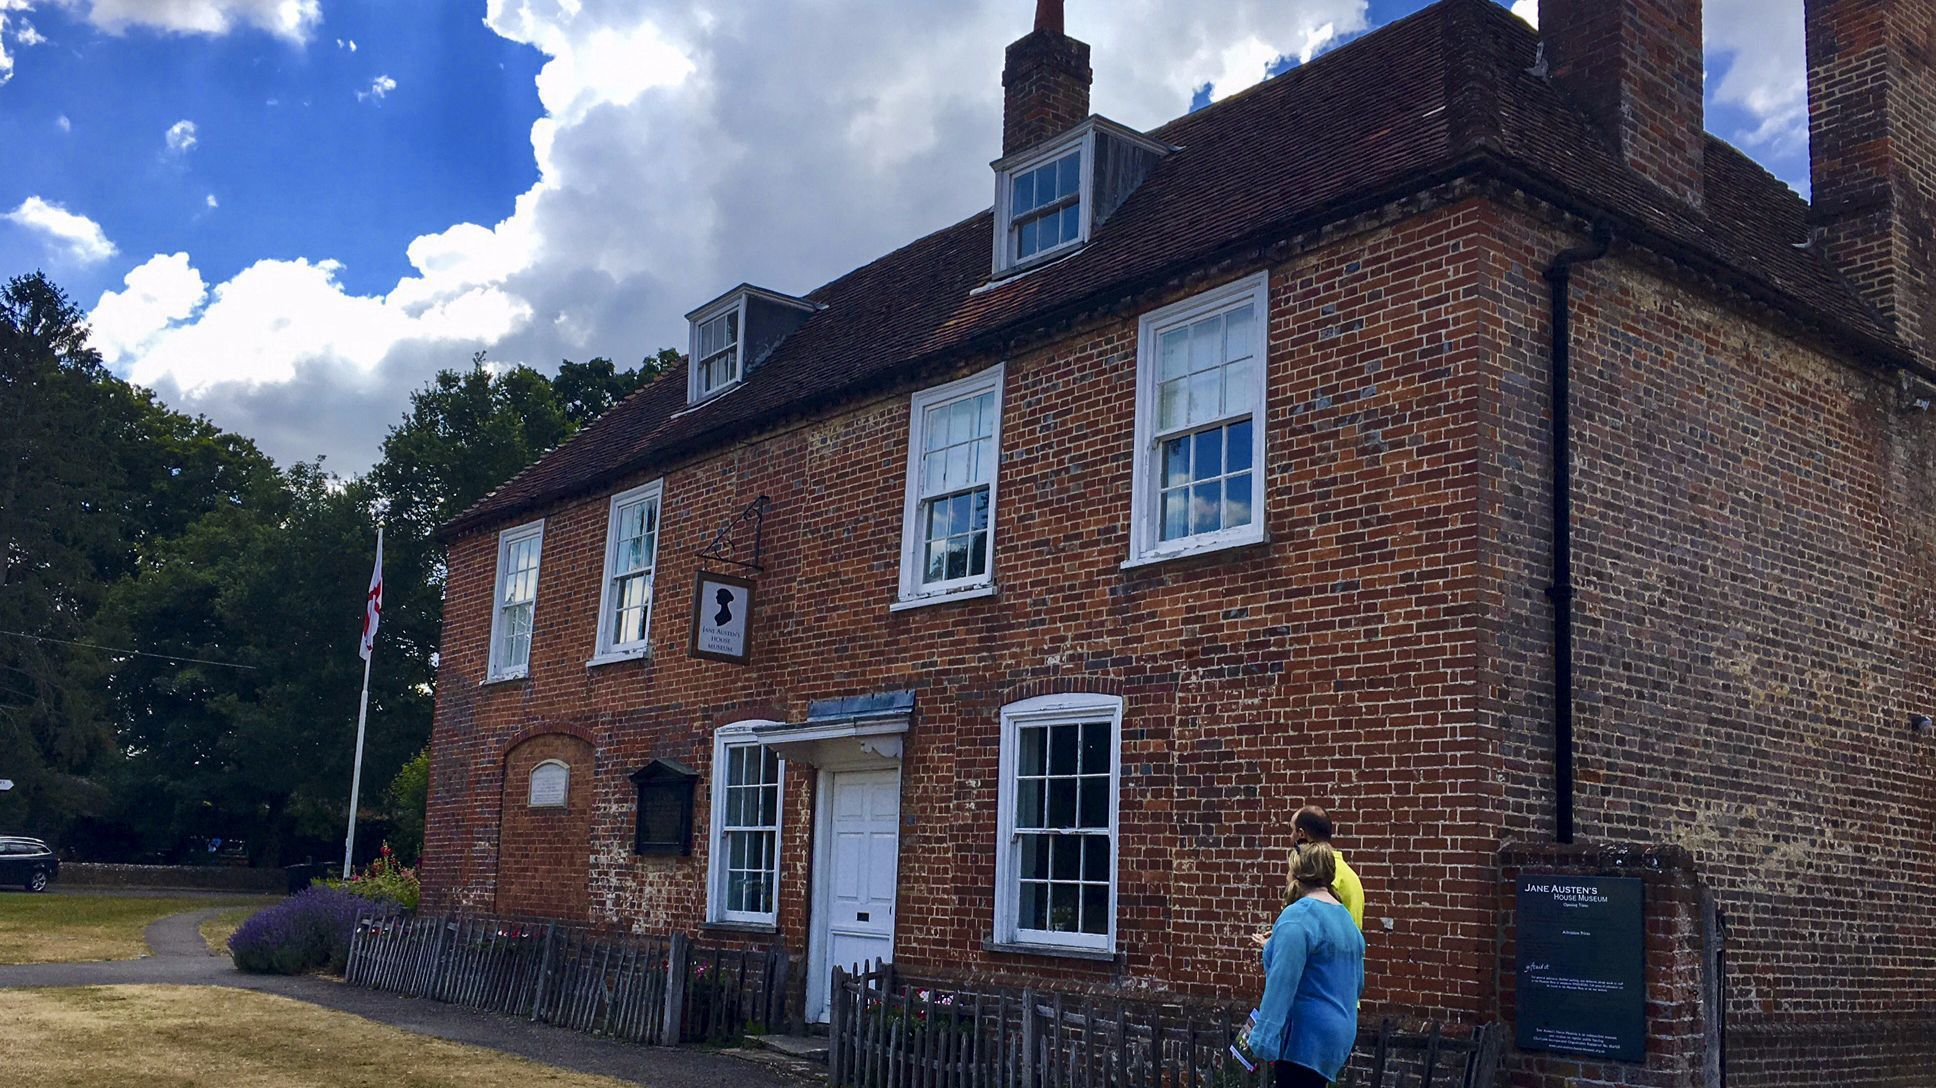 Austen lived in Hampshire, England, for several years, completing most of her major works there.  Her home is now the Jane Austen House Museum, a draw for fans.